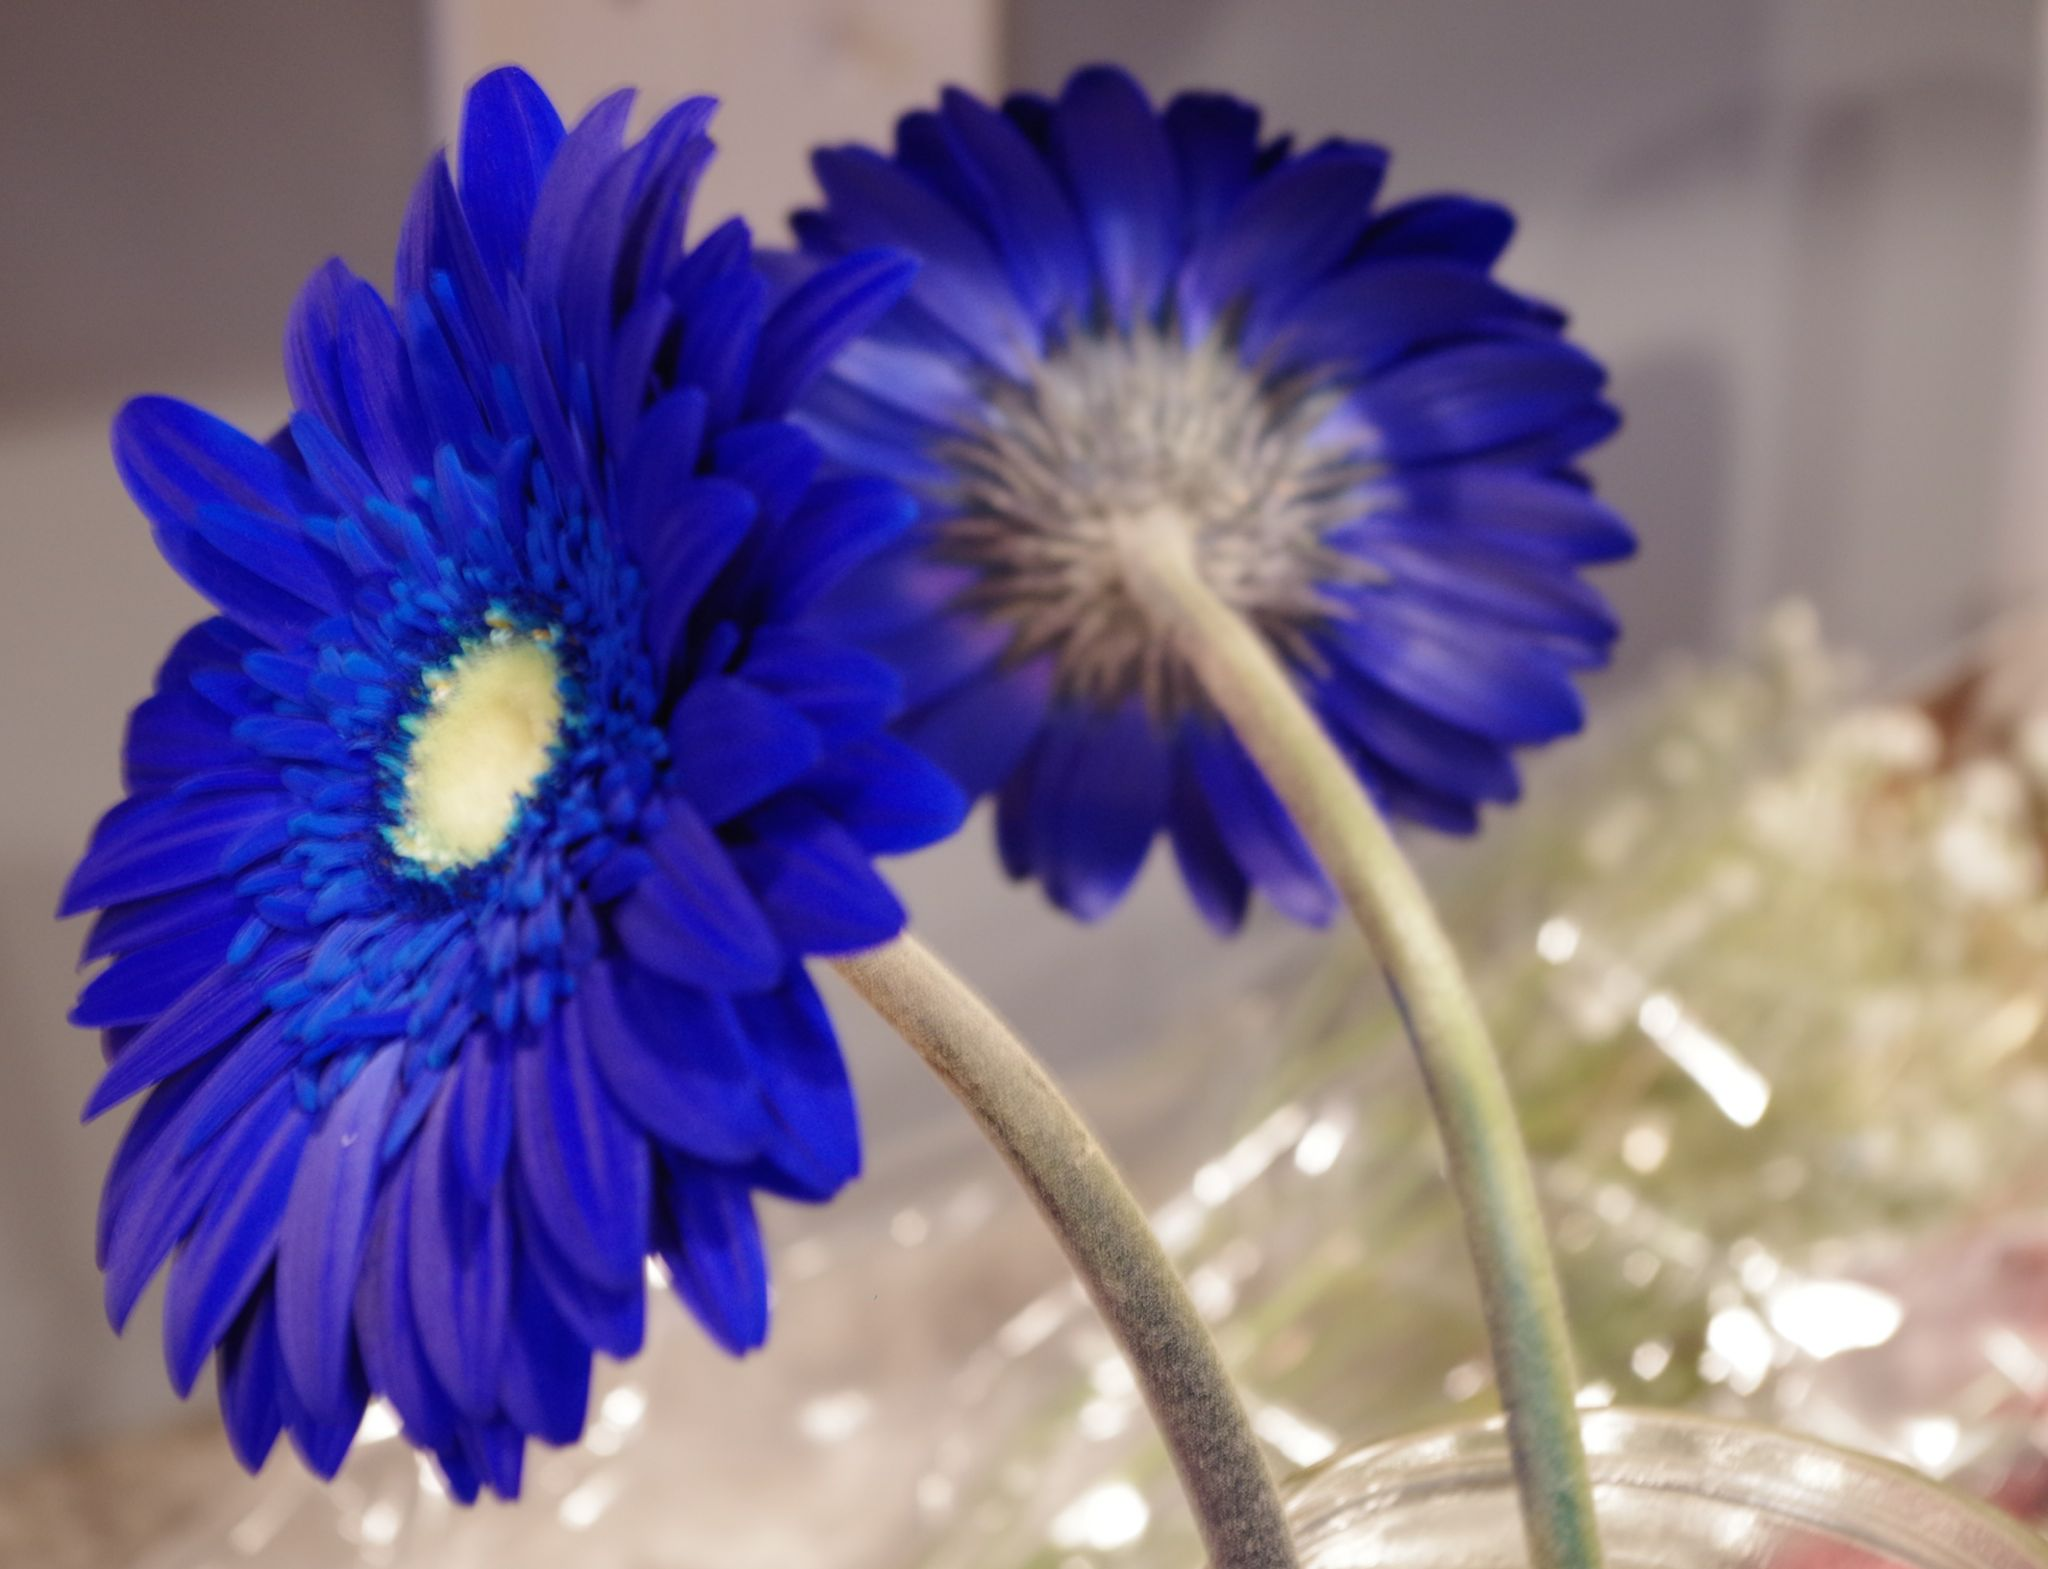 Two Blue Daisies